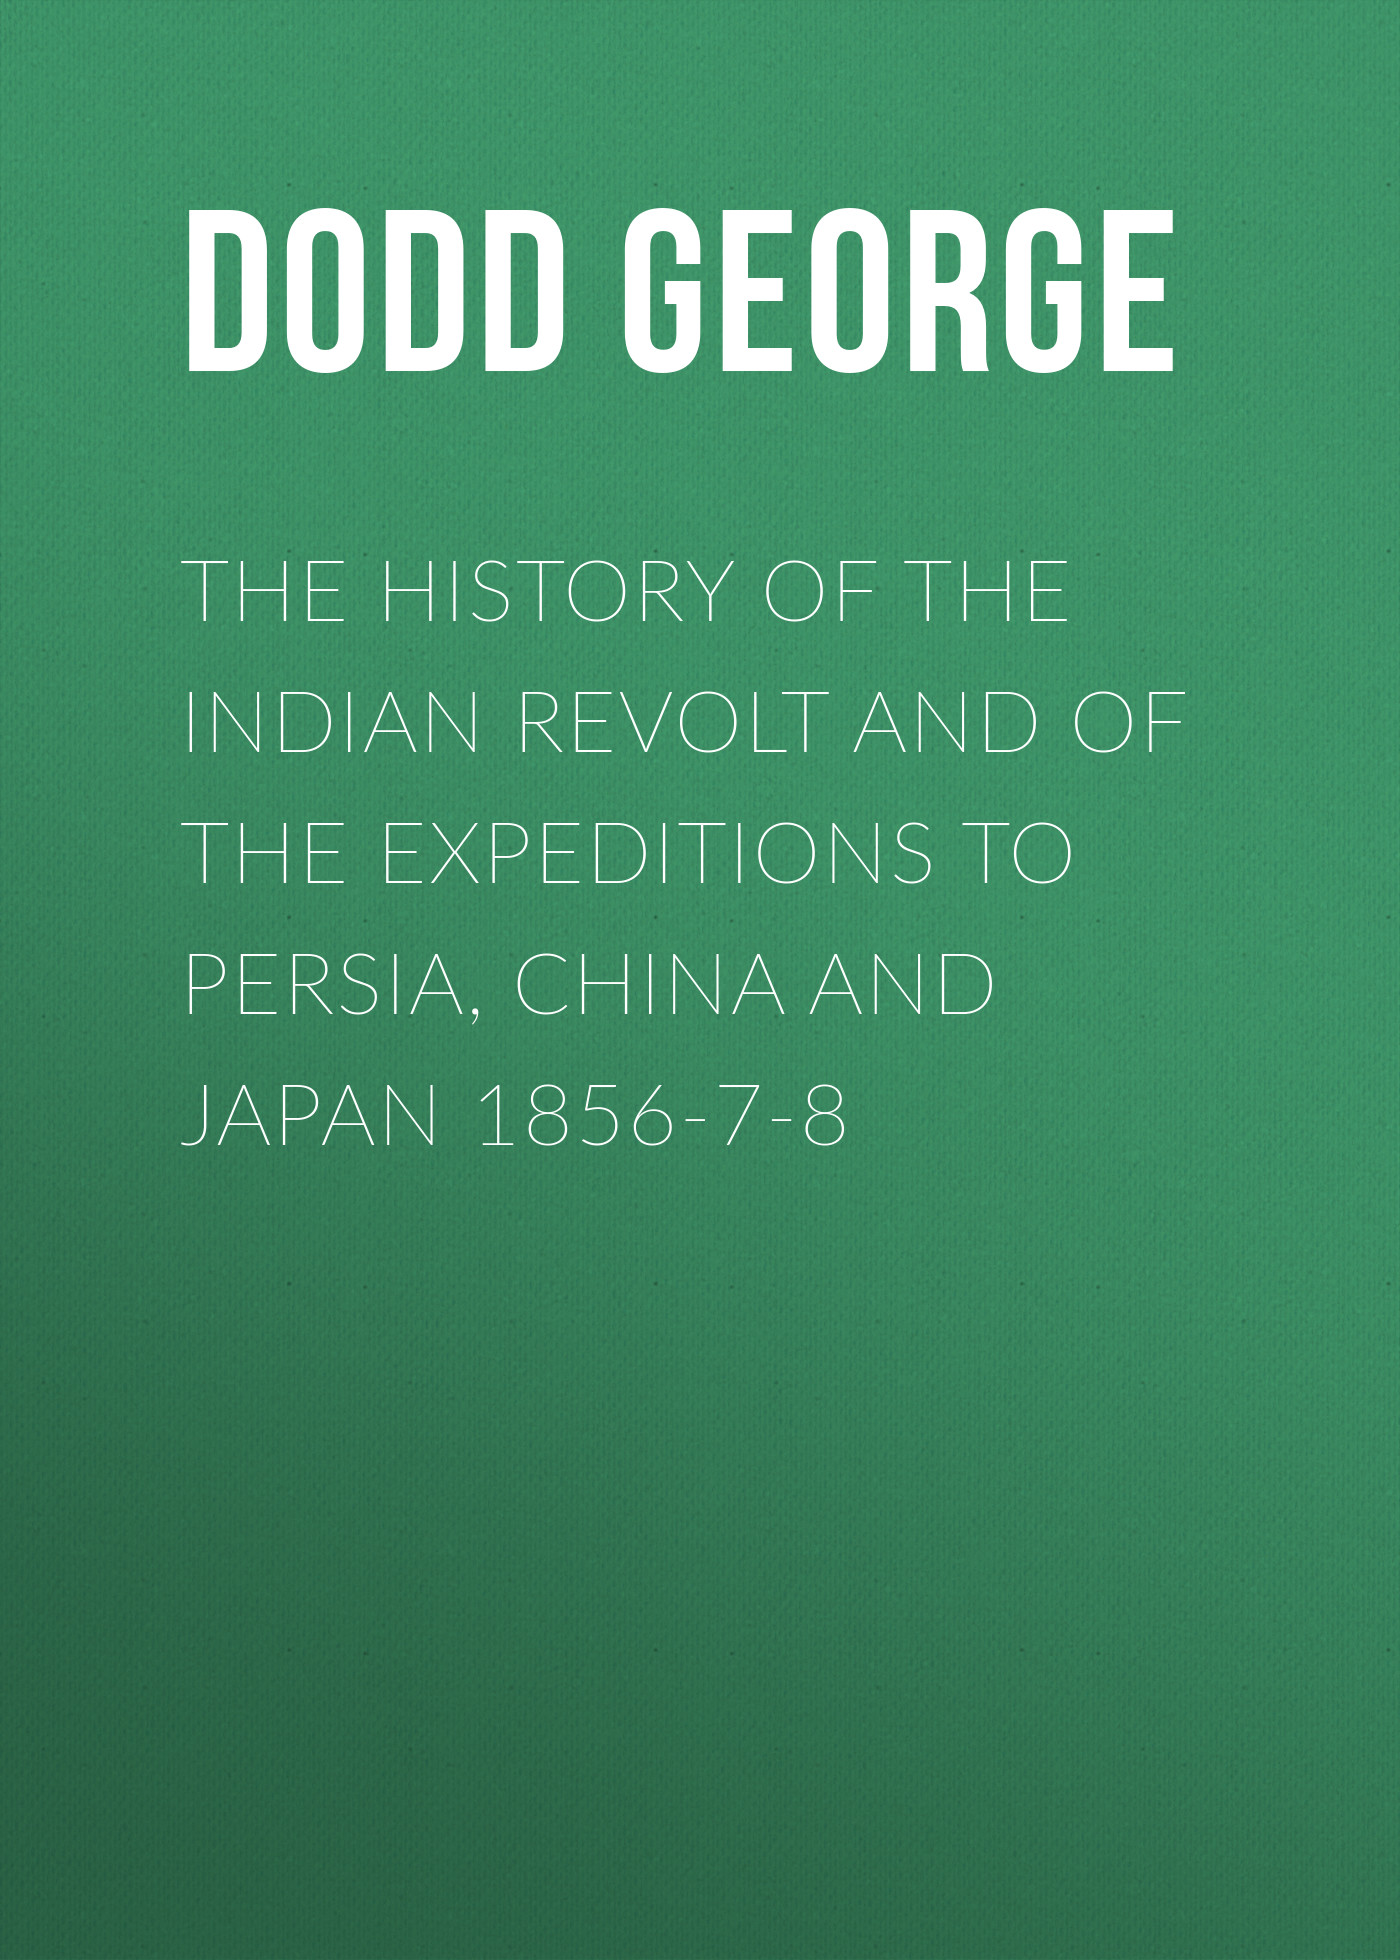 Dodd George The History of the Indian Revolt and of the Expeditions to Persia, China and Japan 1856-7-8 workers from china to japan